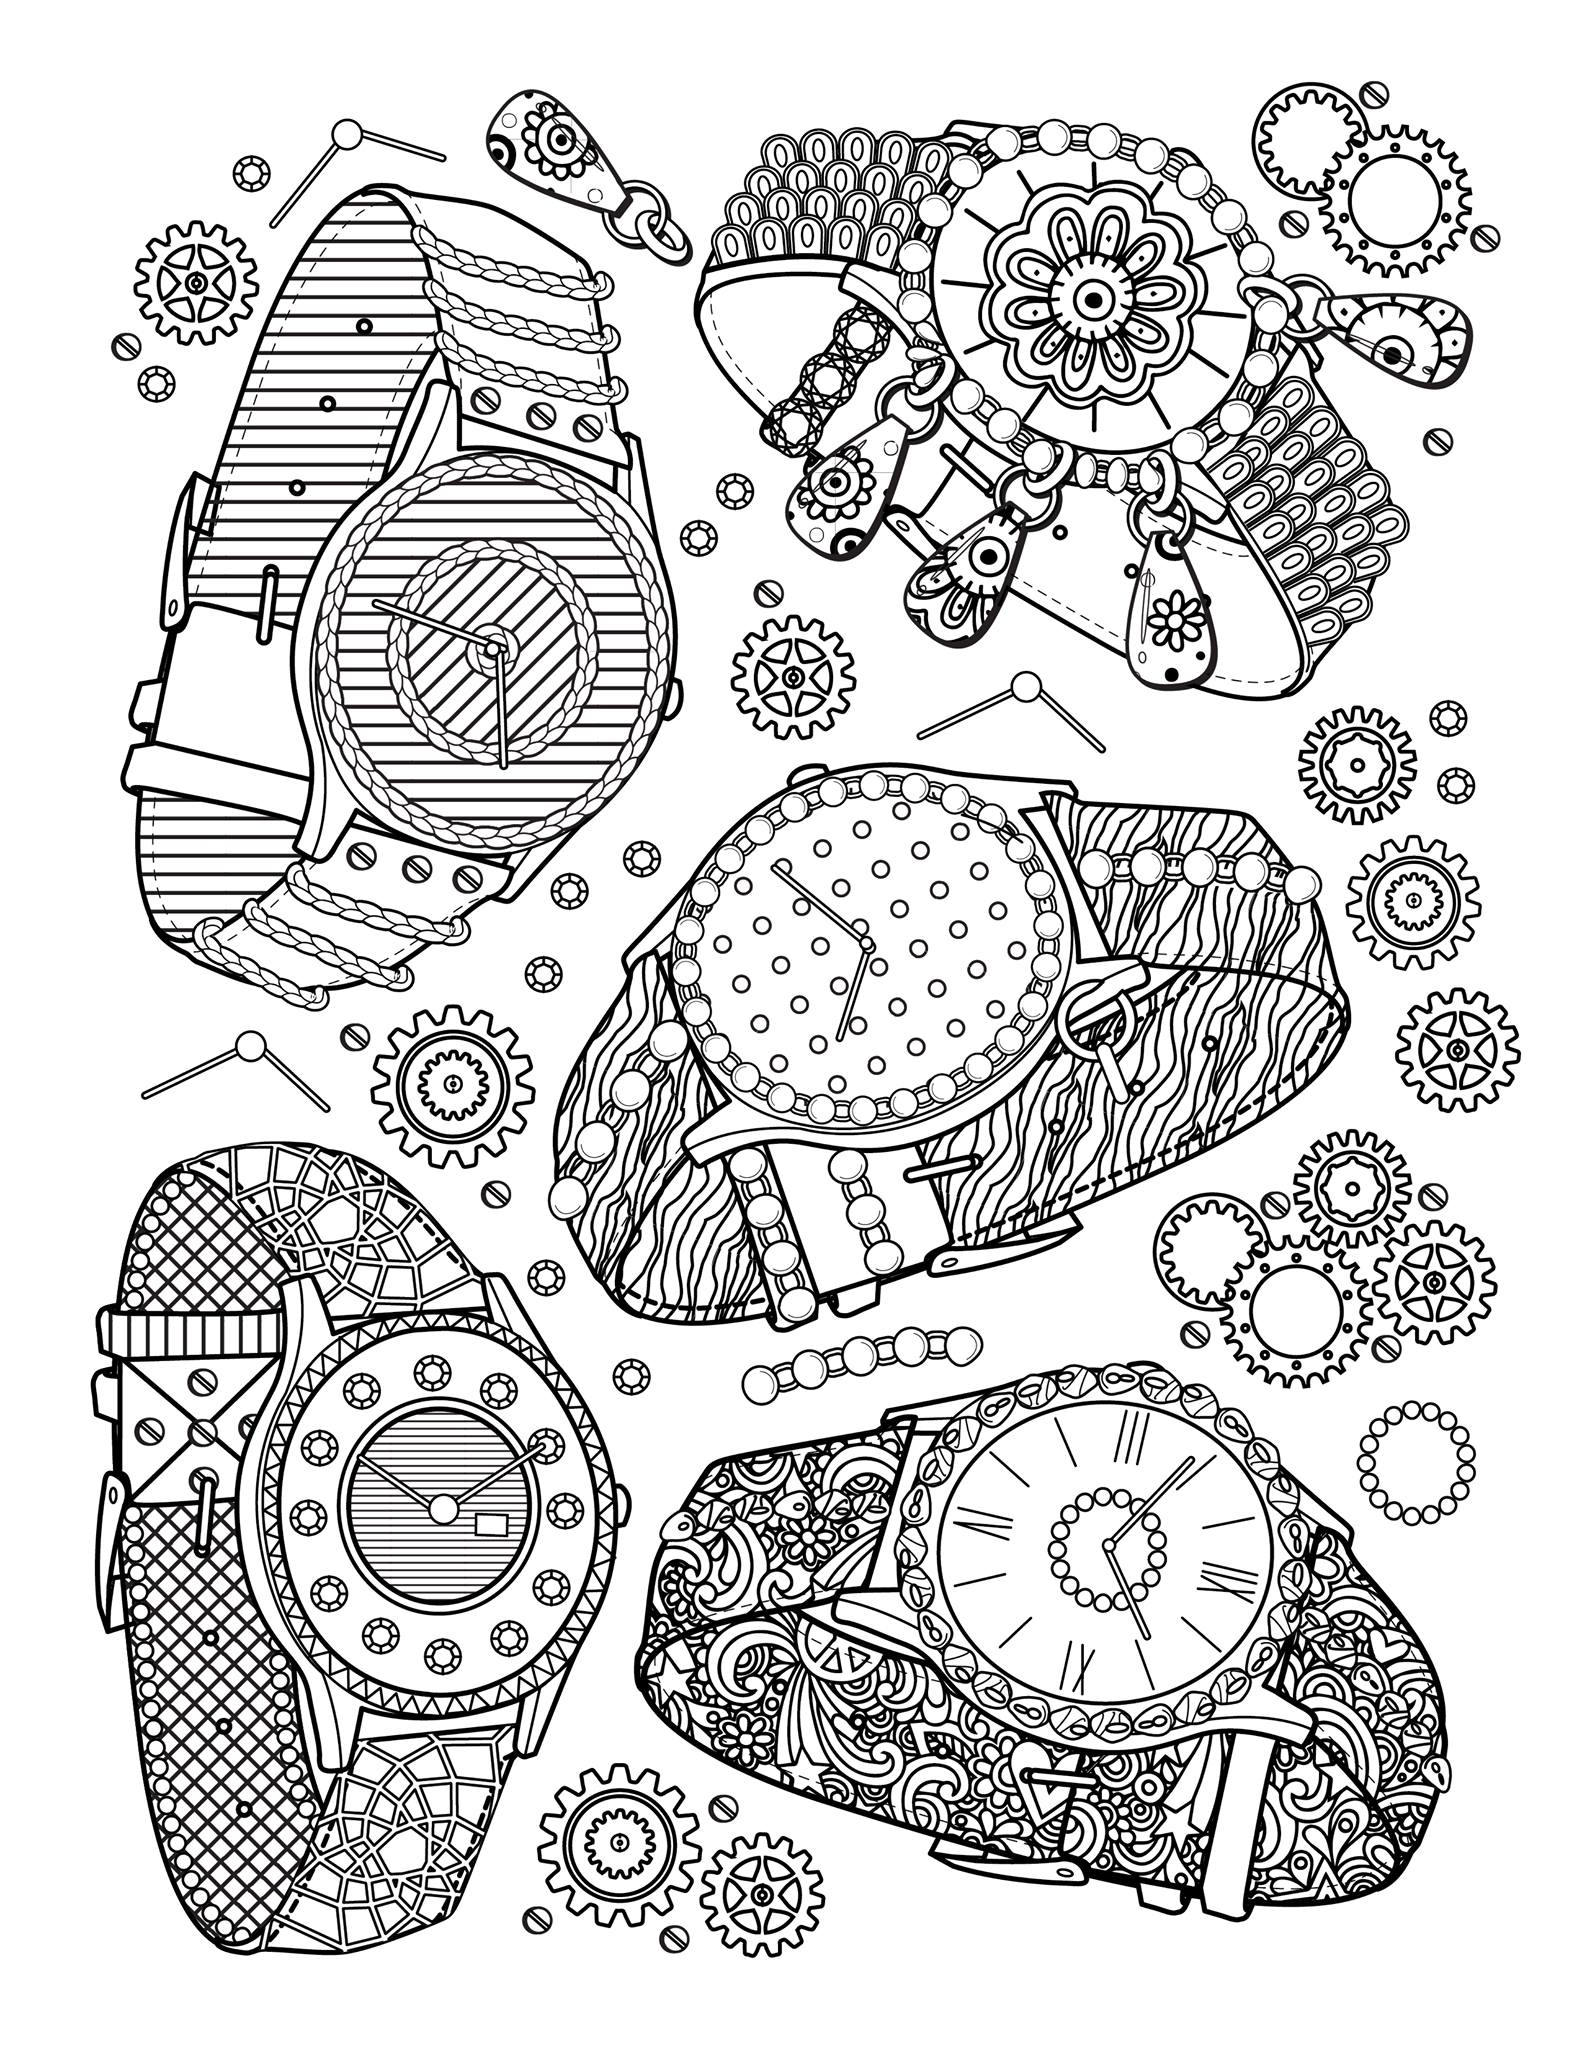 'Watches' : A page from 'The Best Jewelry adult coloring book', available here